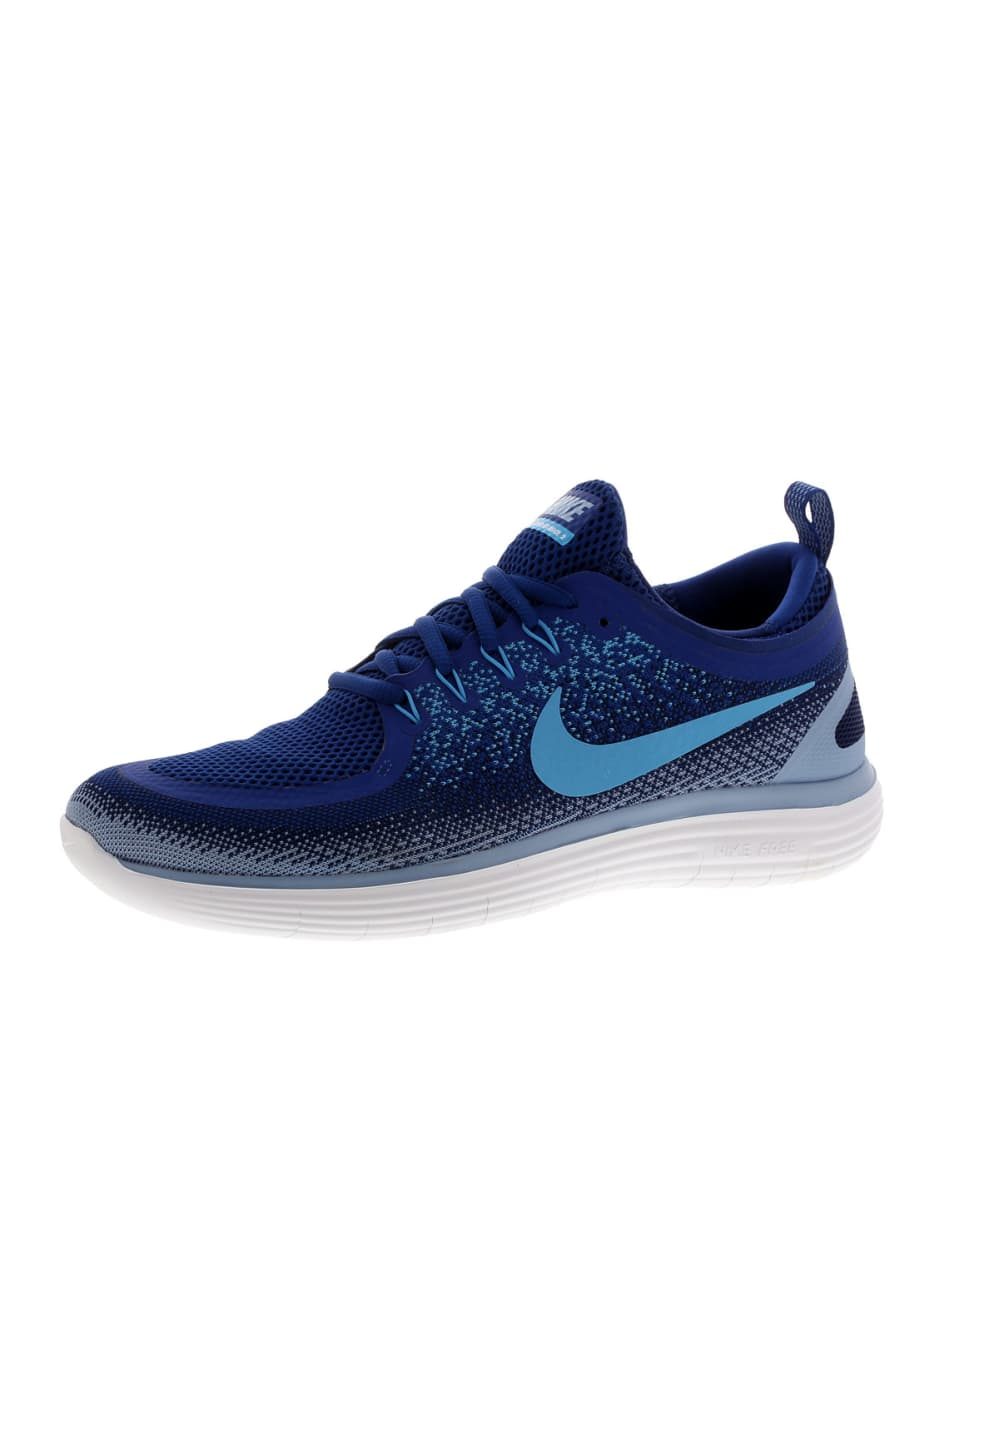 Nike Free RN Distance 2 - Running shoes for Men - Blue